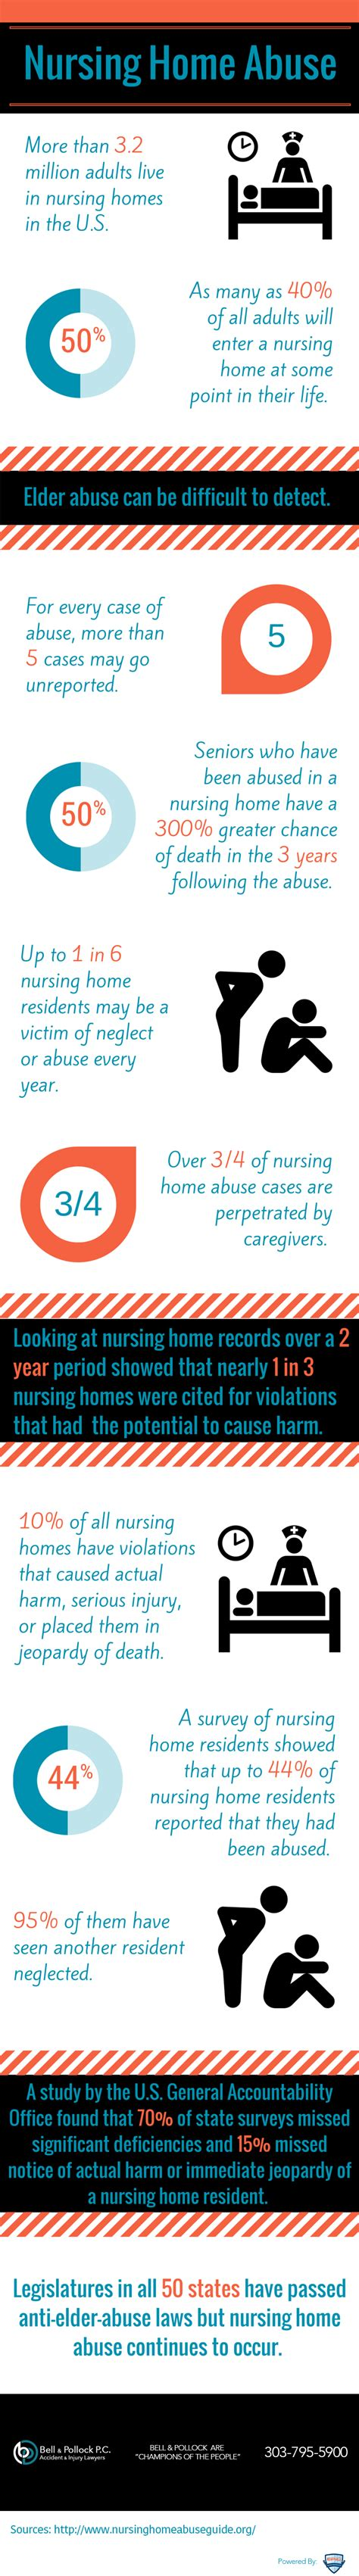 the nursing home abuse epidemic in the u s infographic